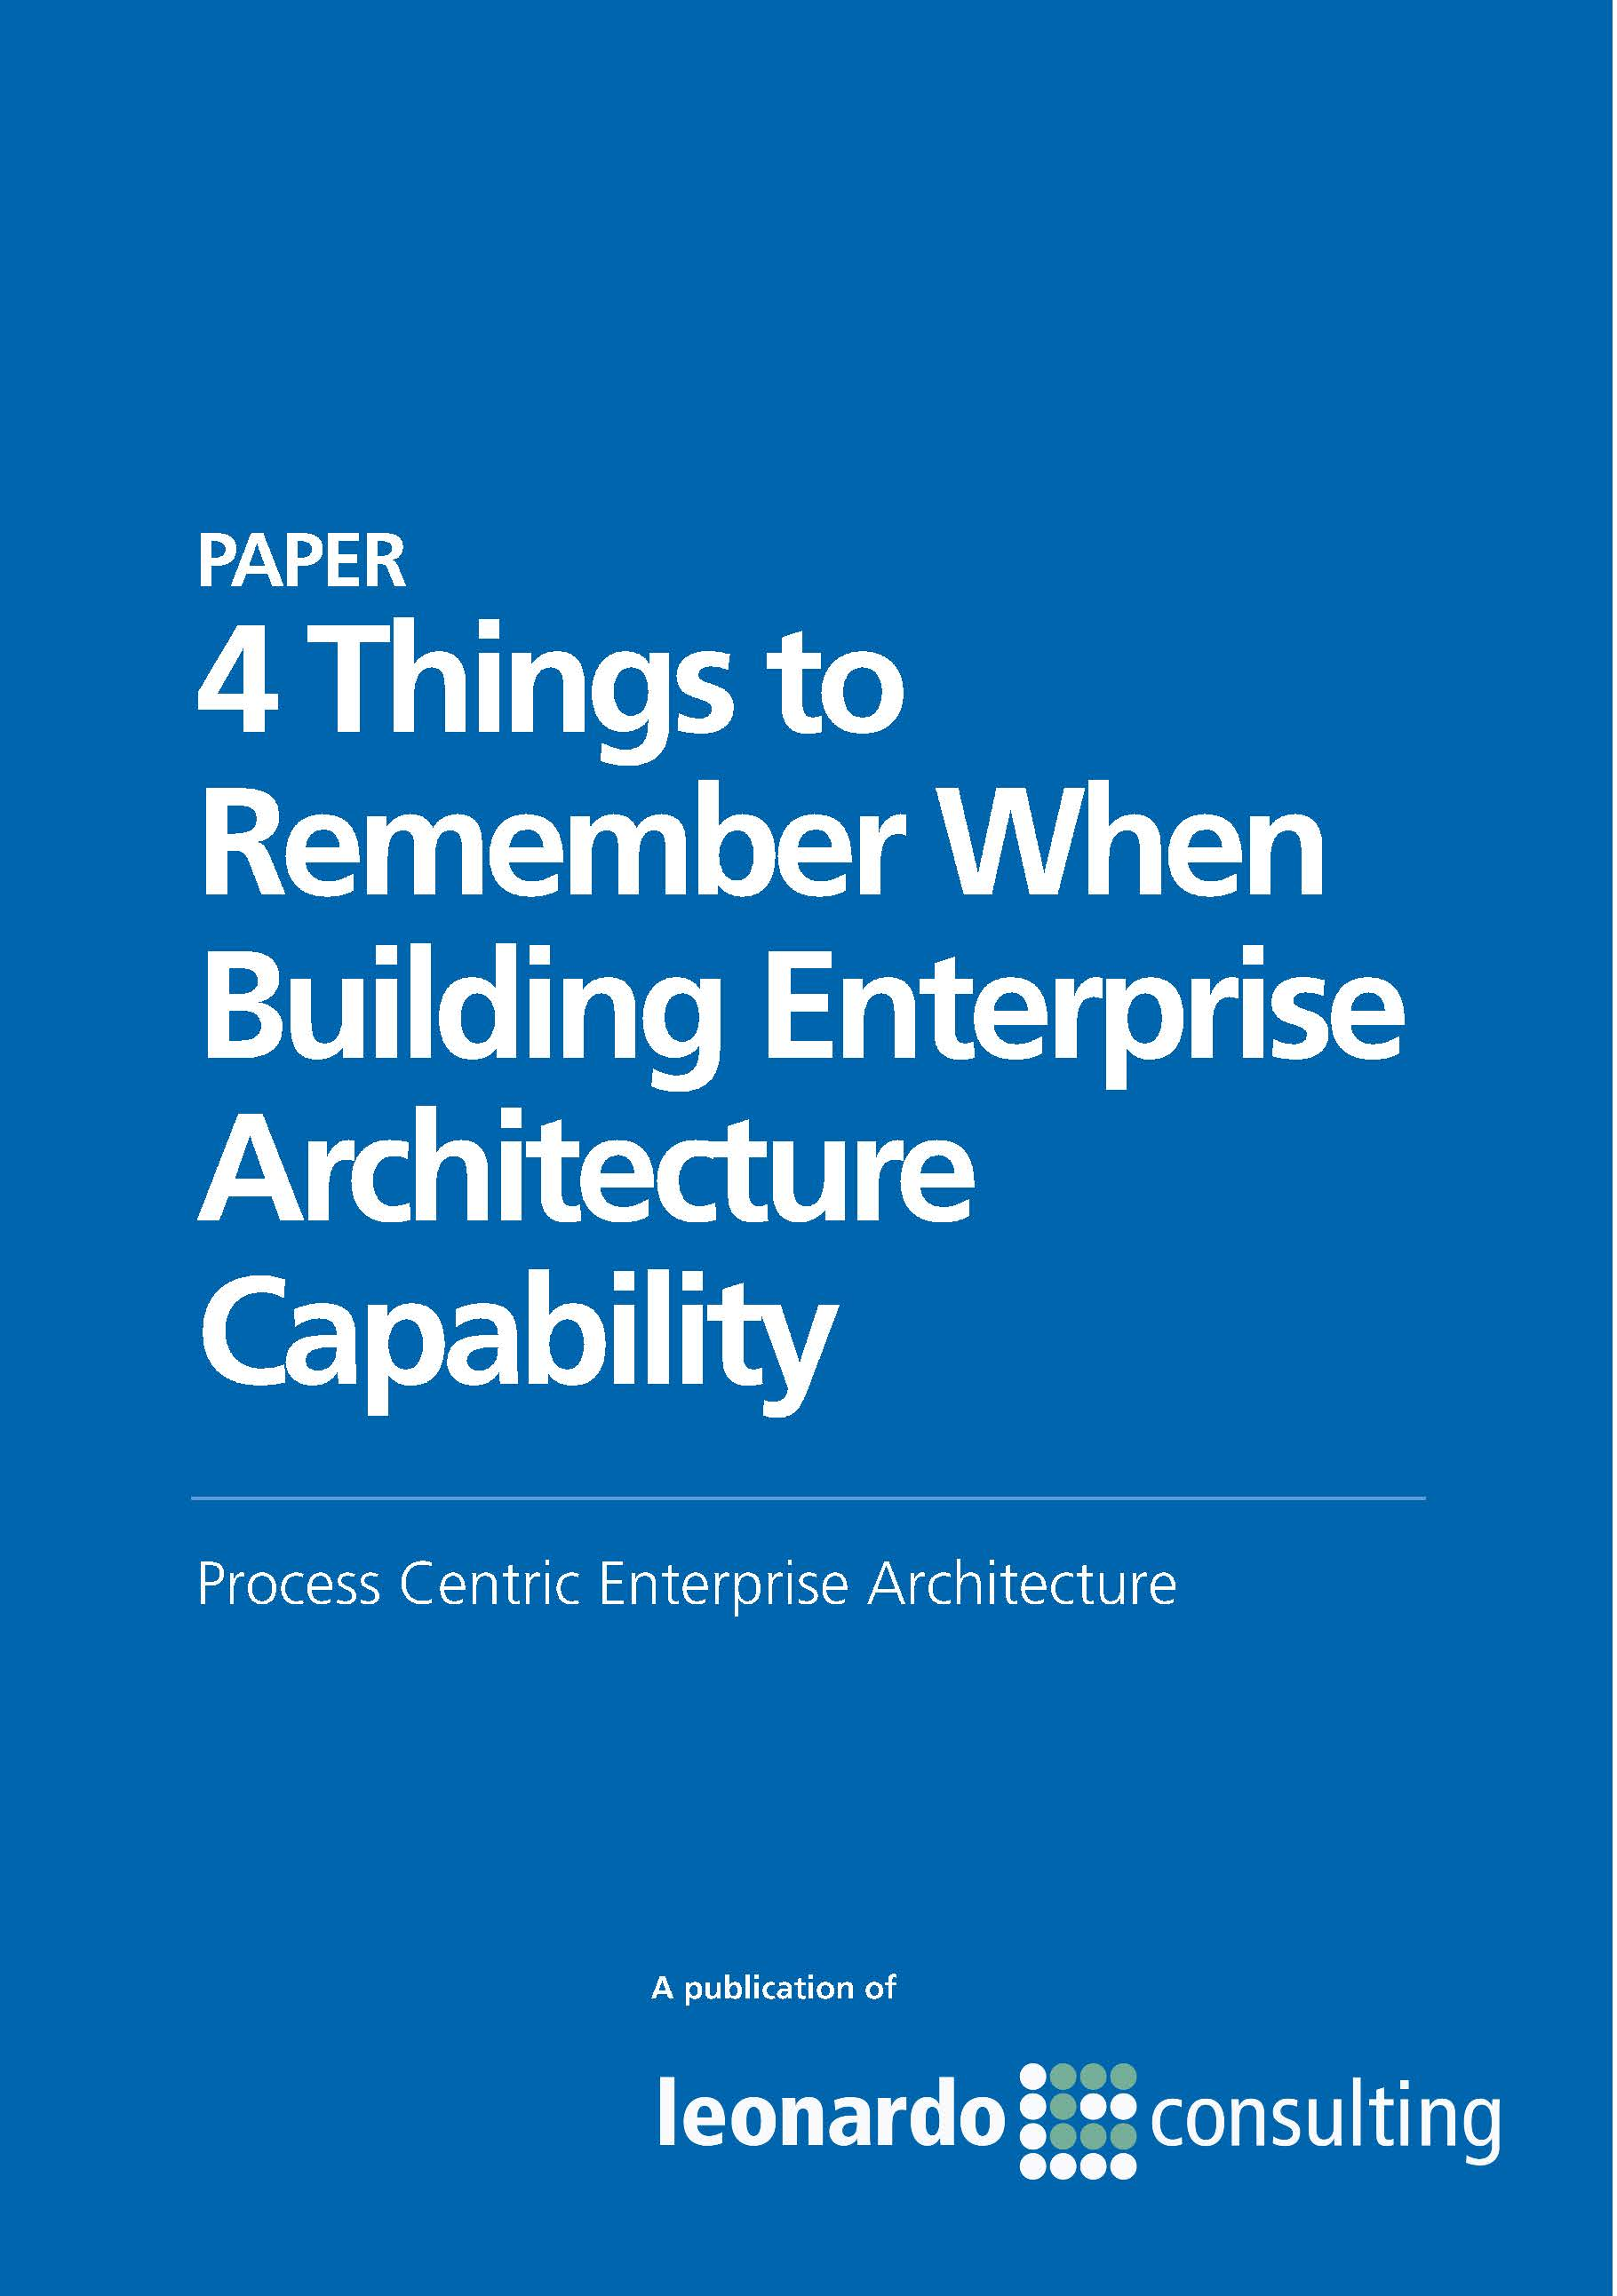 4 Things to Remember When Building Enterprise Architecture Capability